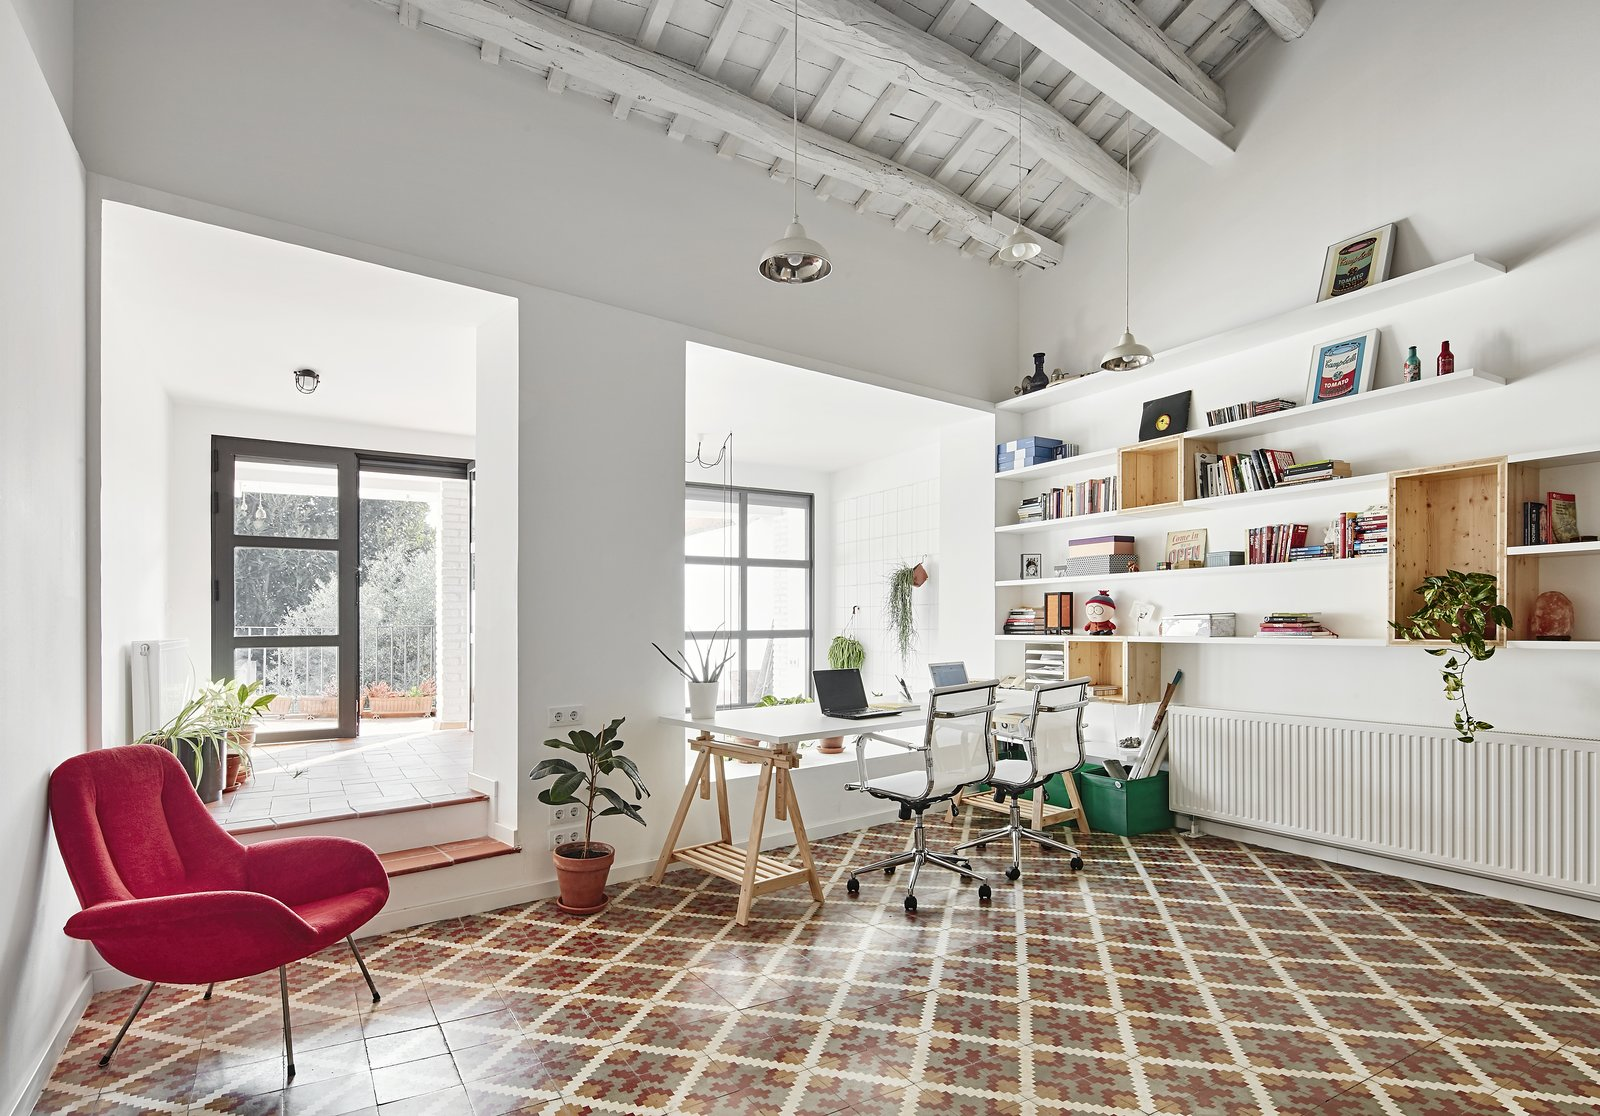 Office, Chair, Desk, Shelves, and Ceramic Tile Floor  Photo 2 of 11 in Can This Renovated, Loft-Like Home in Spain Be Any Dreamier?